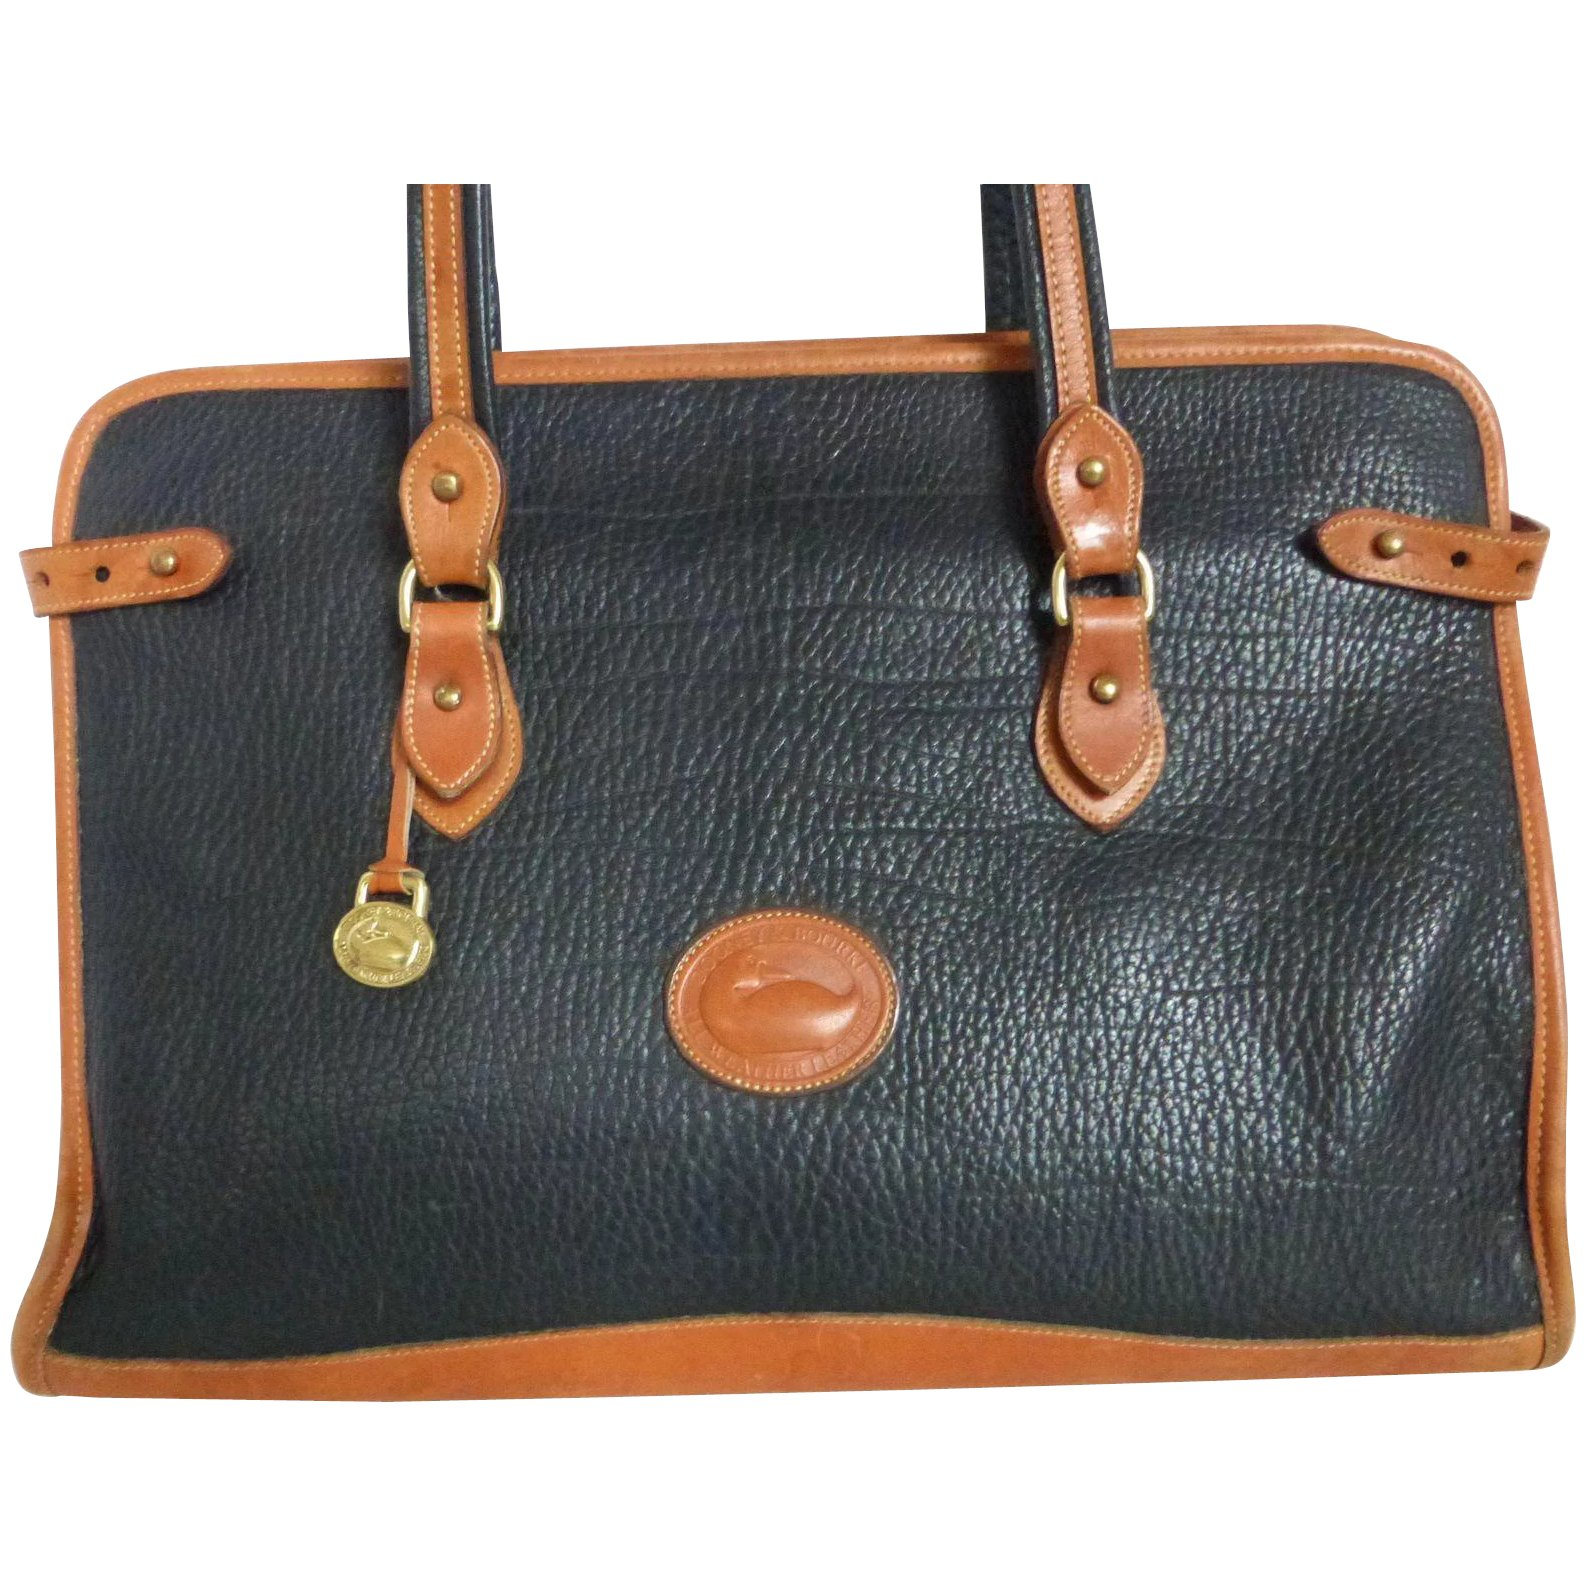 new high quality new varieties search for authentic Vintage Dooney & Bourke Large Briefcase Satchel Tote Bag Black & British Tan